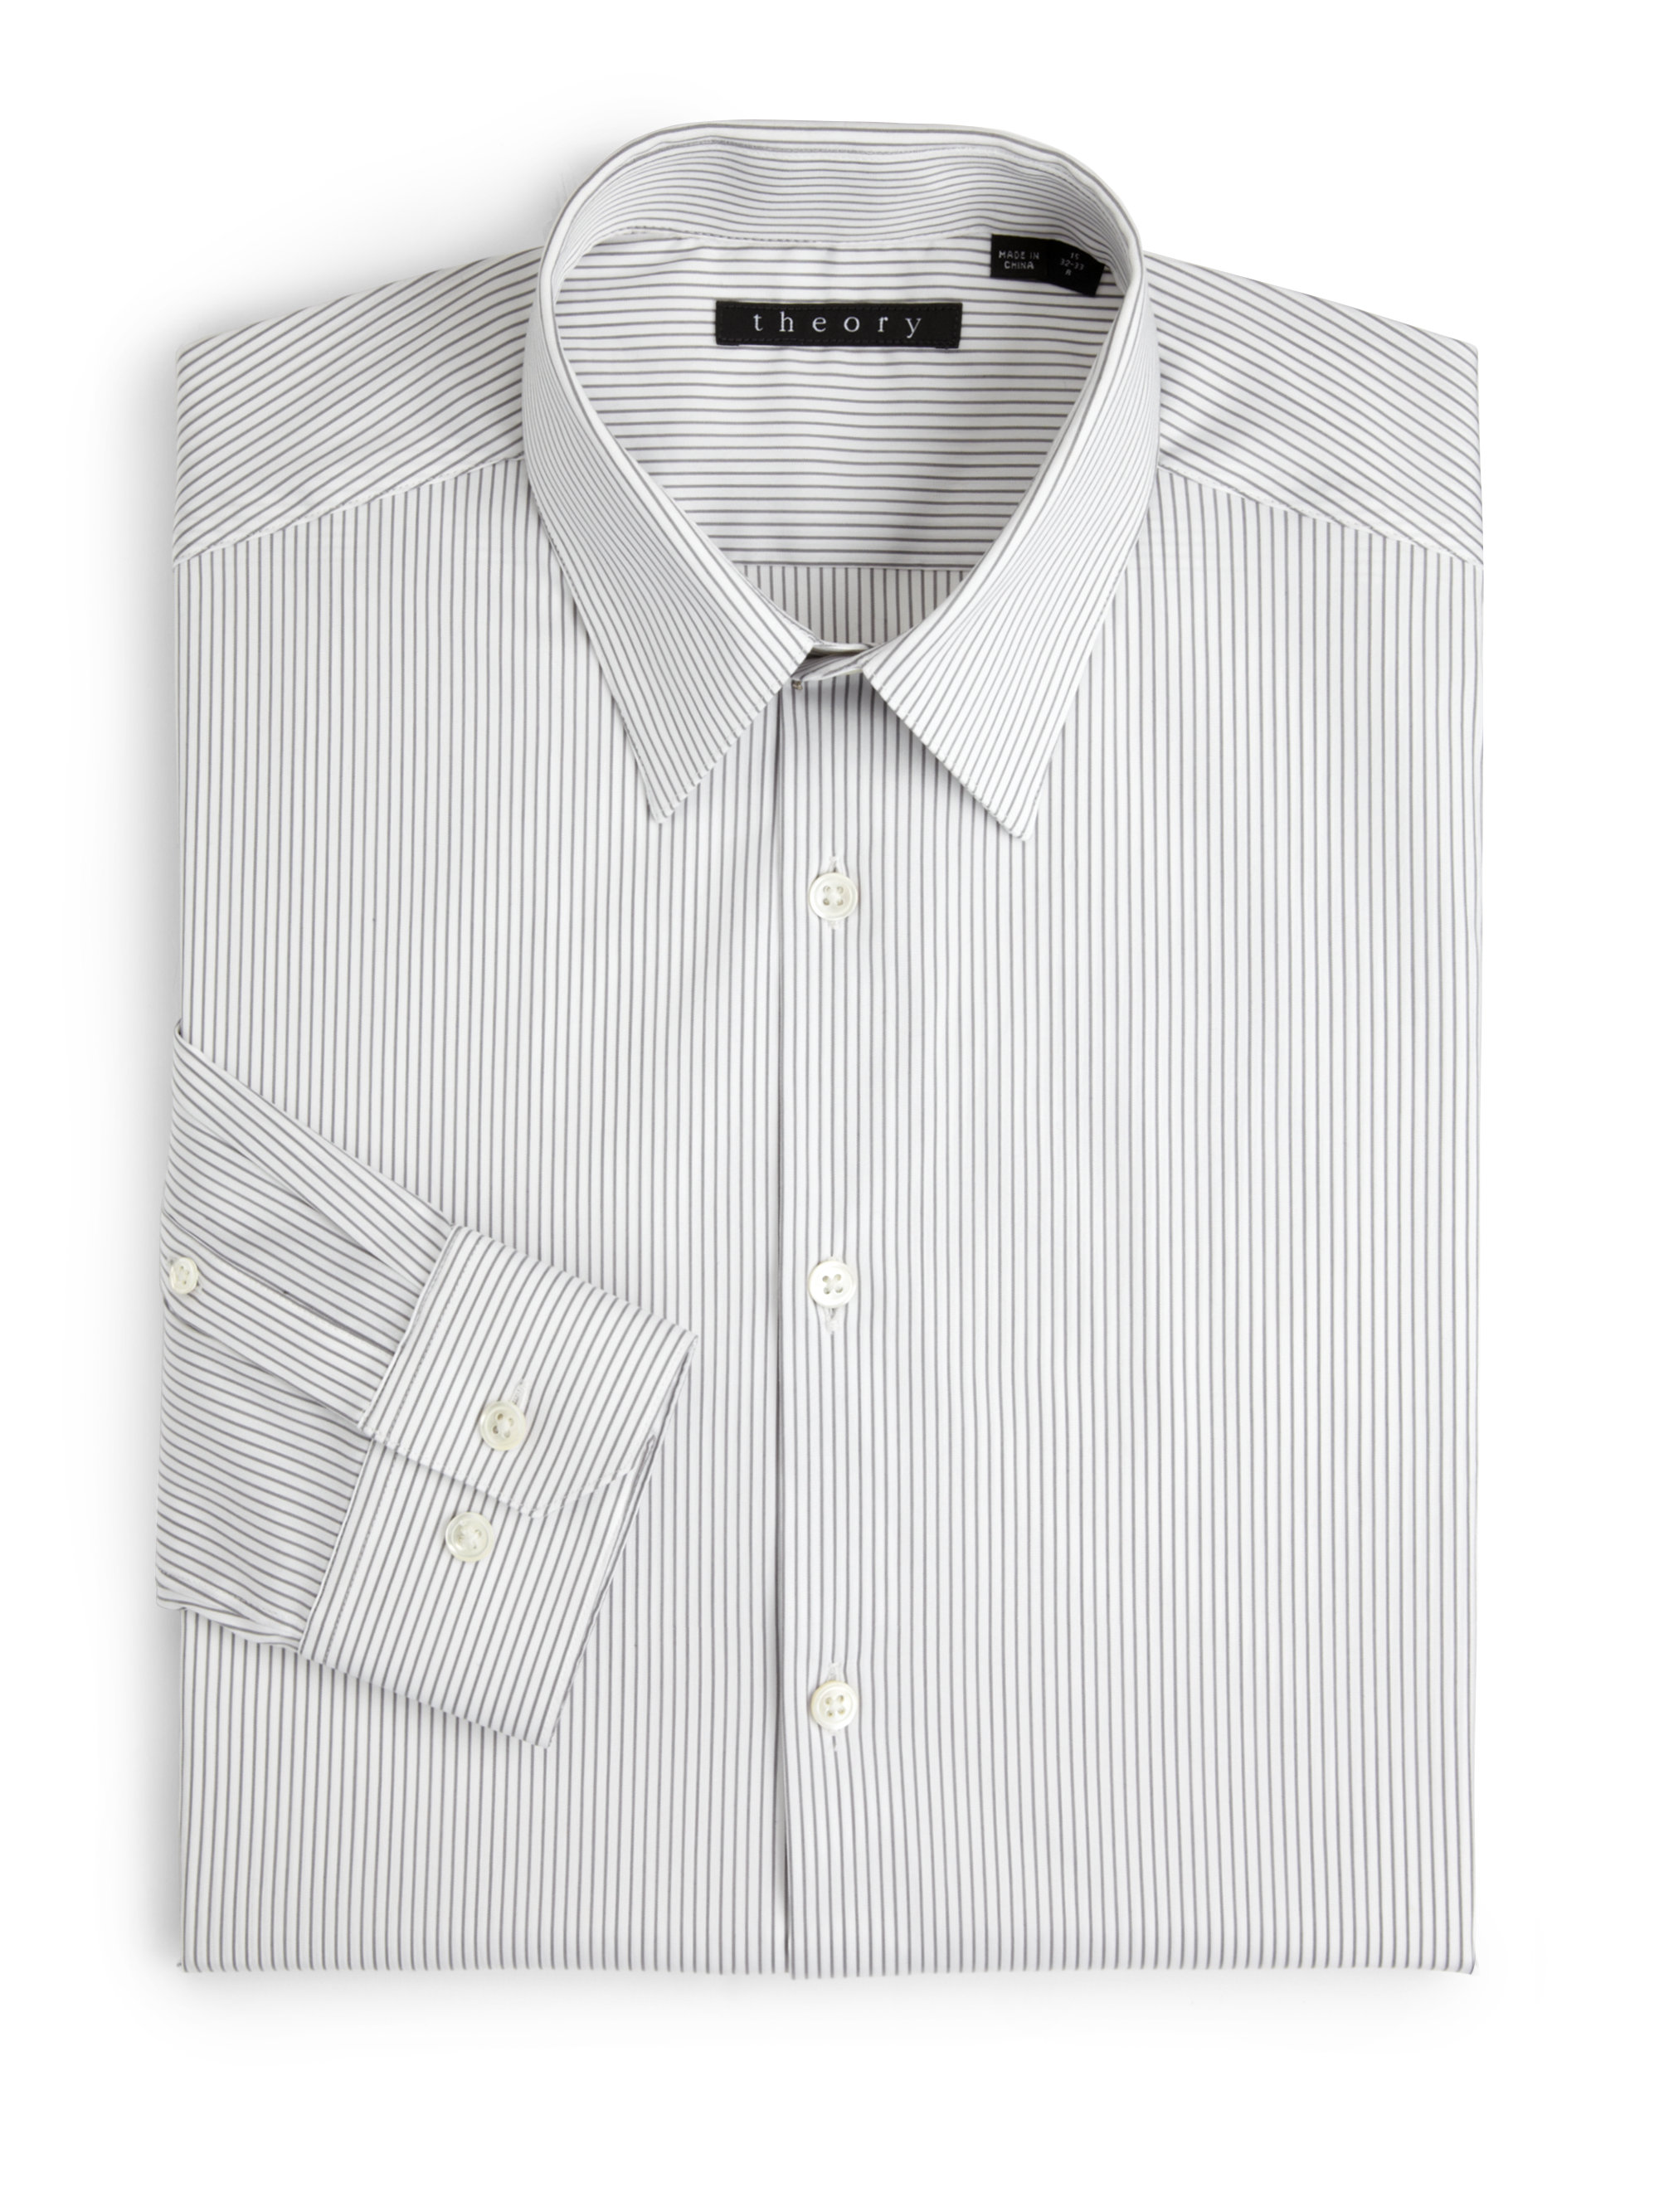 Fabulous Lyst - Theory Dover Luxe Pinstripe Dress Shirt in Gray for Men PP65